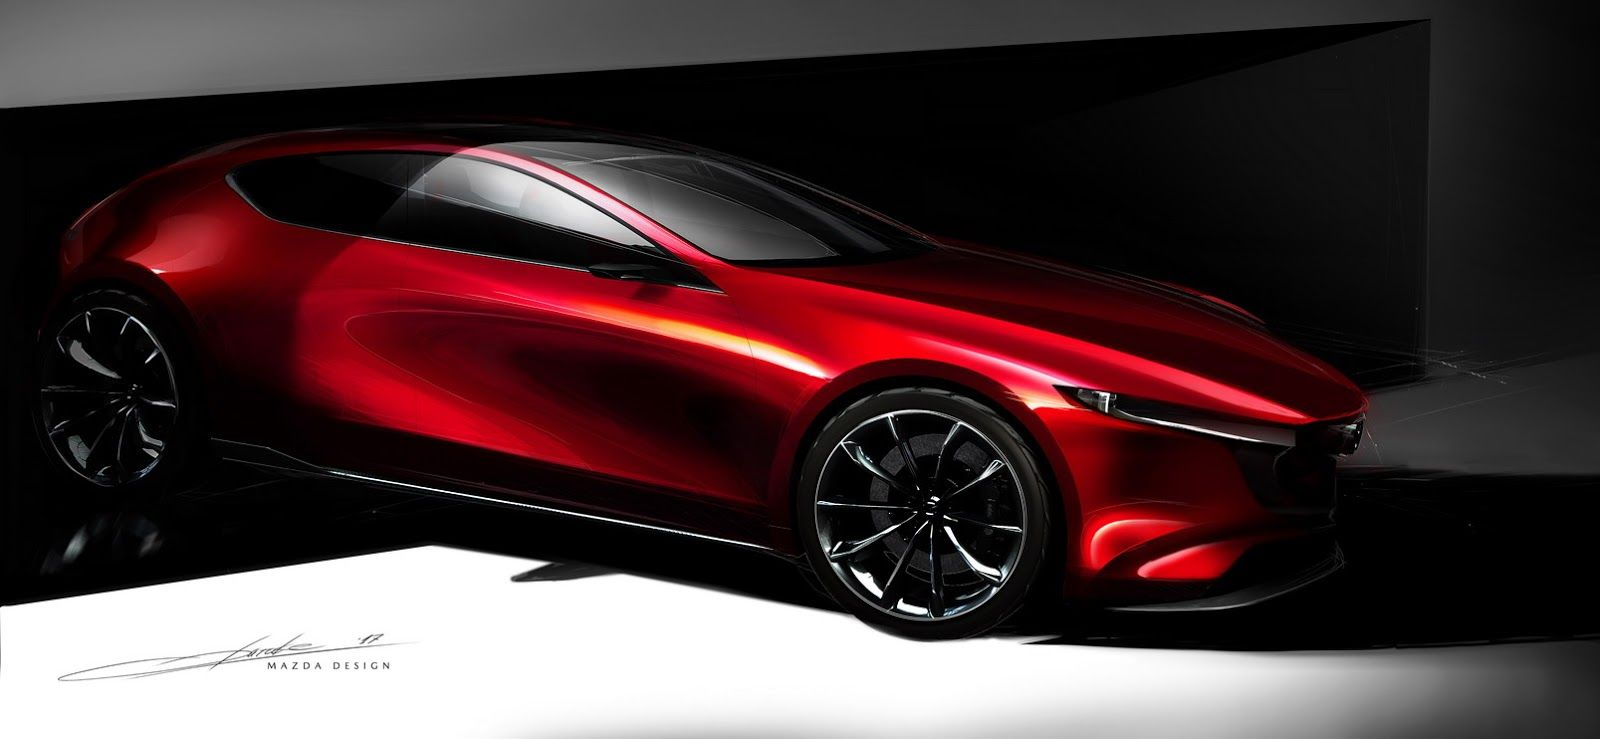 Mazda Kai Concept Teases Next Mazda3 But Don T Get Your Hopes Too High Carscoops In 2020 Car Design Mazda Concept Car Design